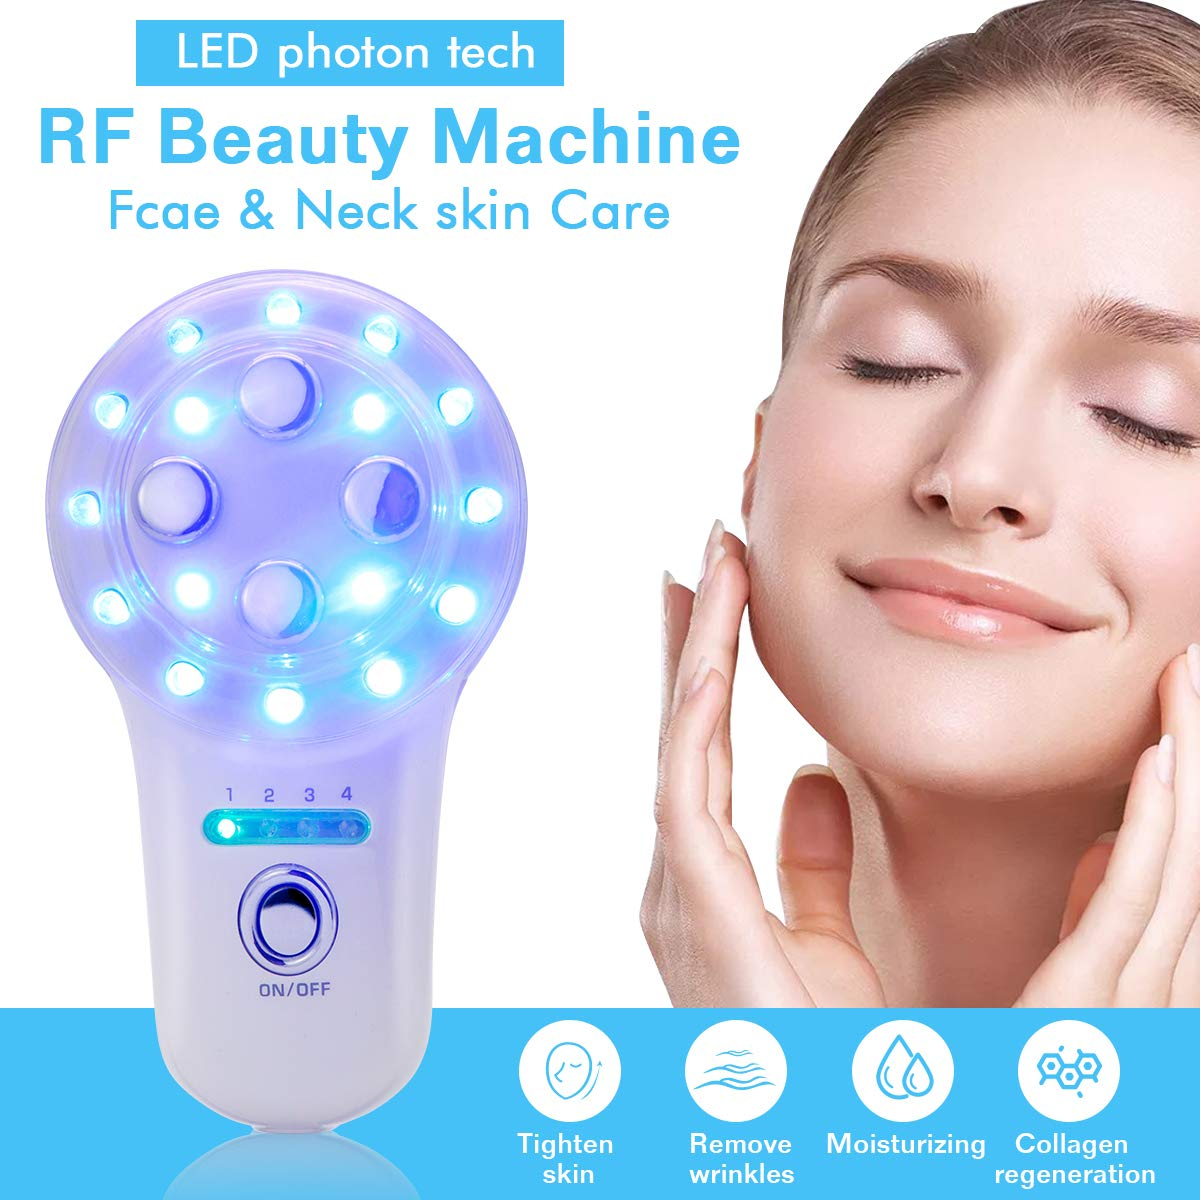 RF Radio Frequency Facial Machine EMS Skin Care Device for Anti-Aging Face Lifting Tighten Wrinkle Removal